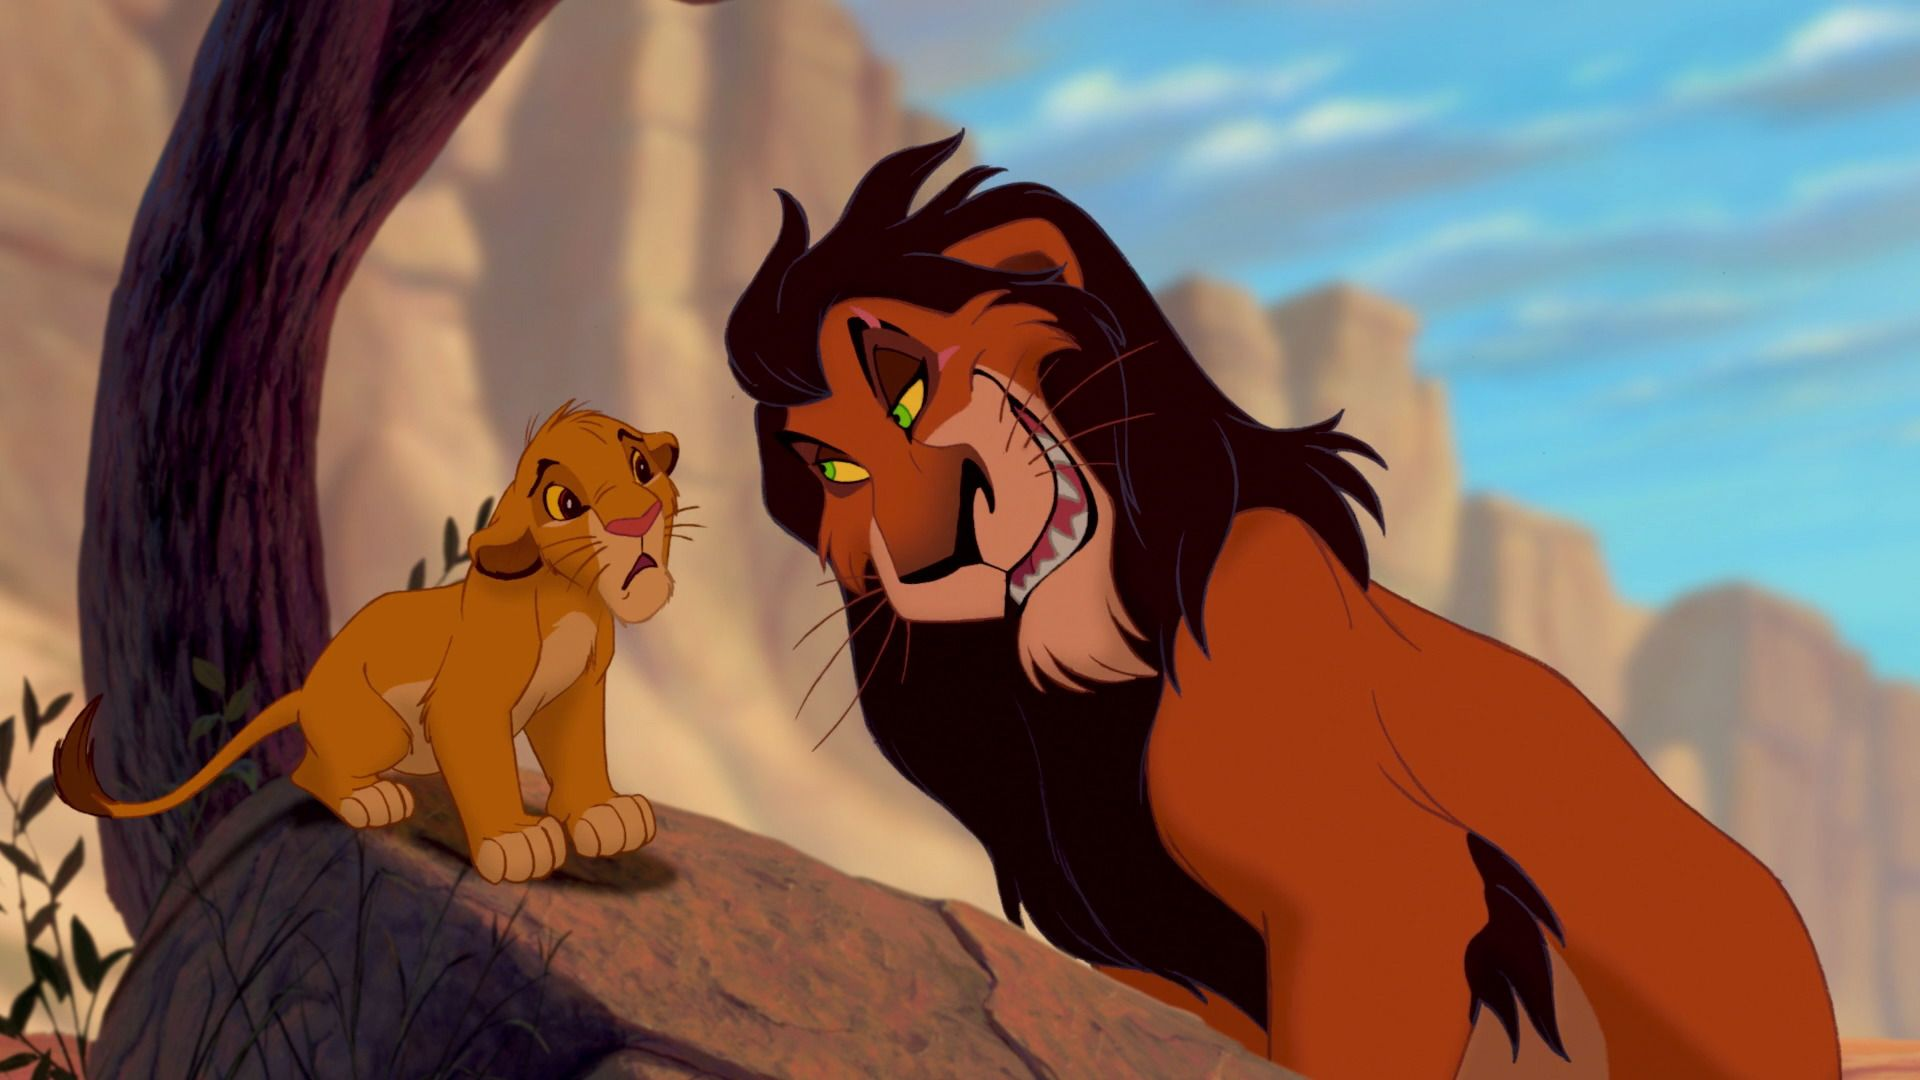 The Lion Kings Original Ending Was Just Too Dark For The Remake